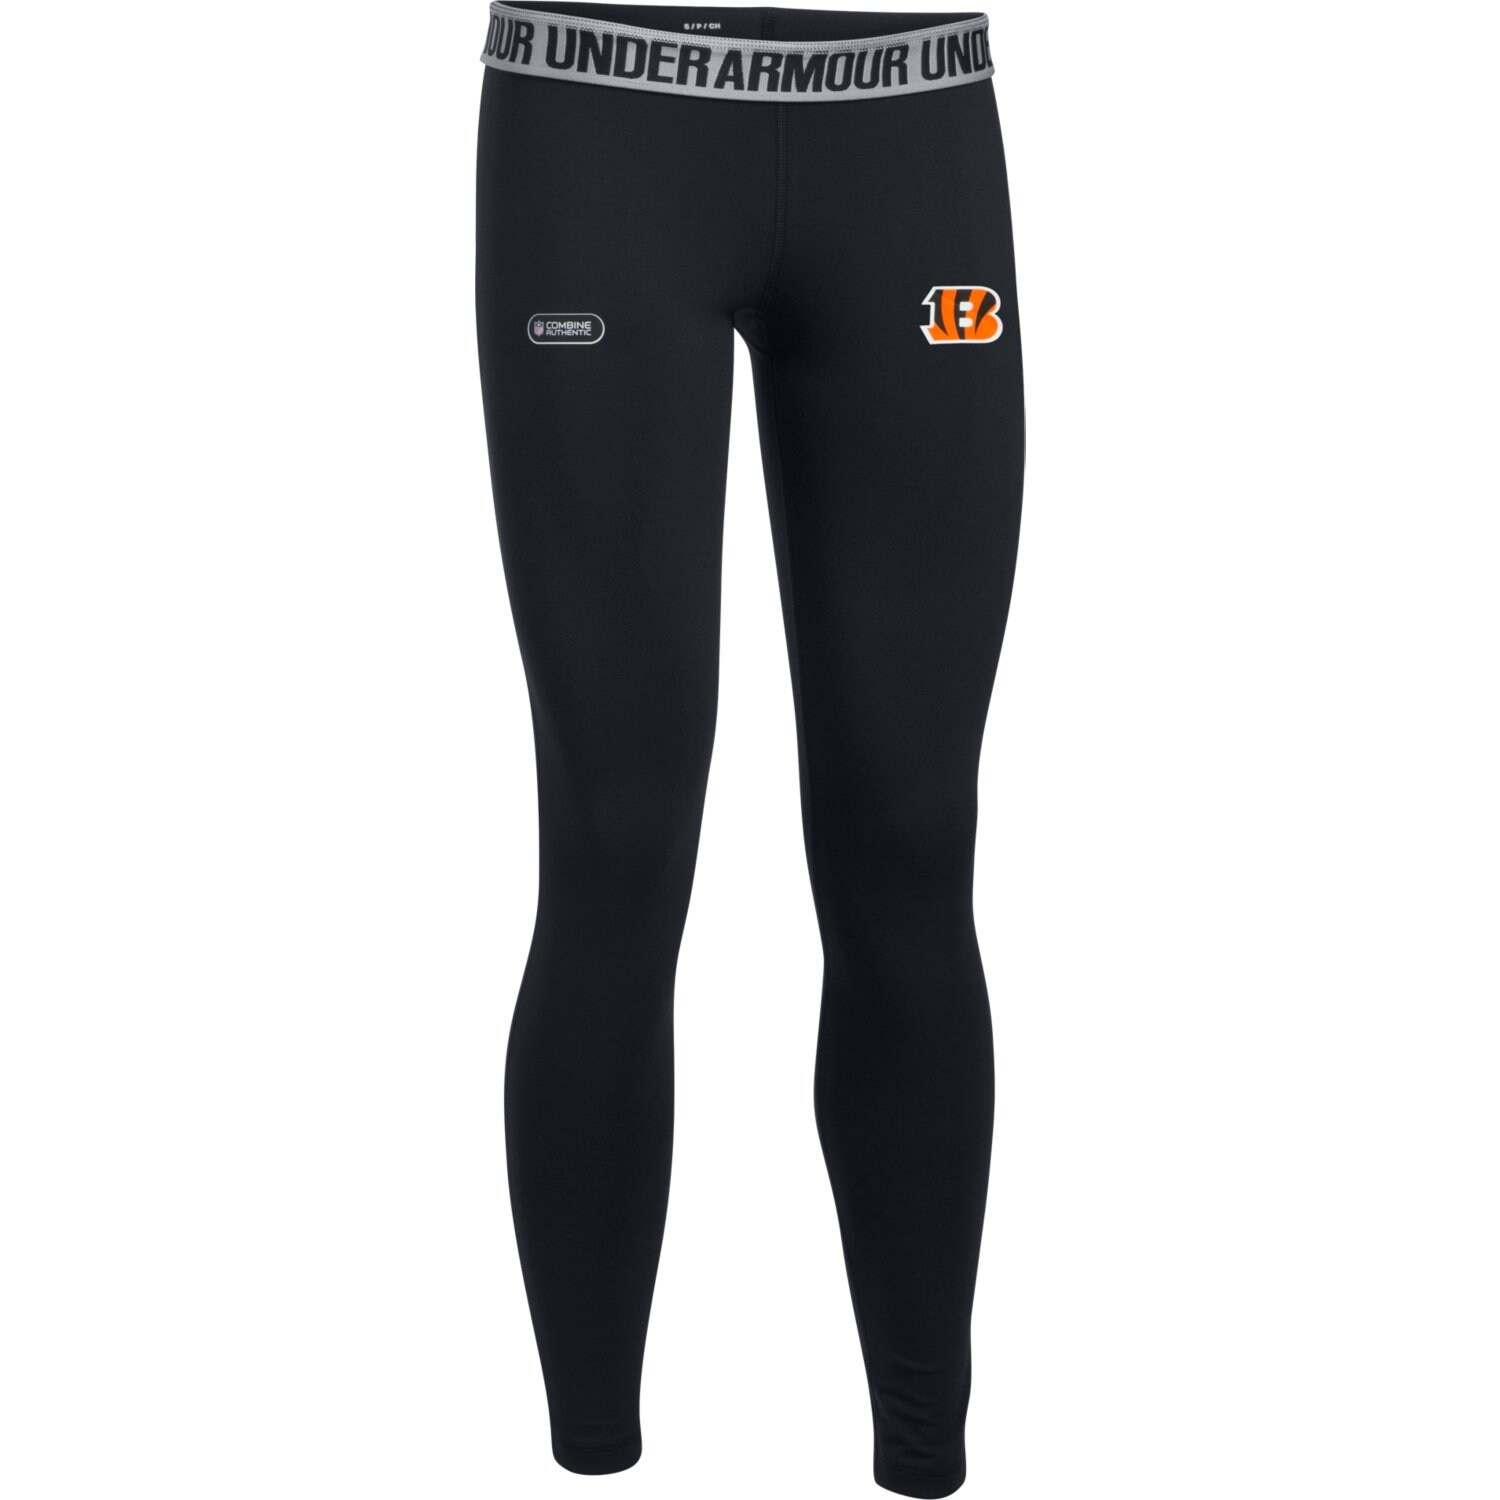 Cincinnati Bengals Under Armour Women's Combine Authentic Favorites Leggings - Black